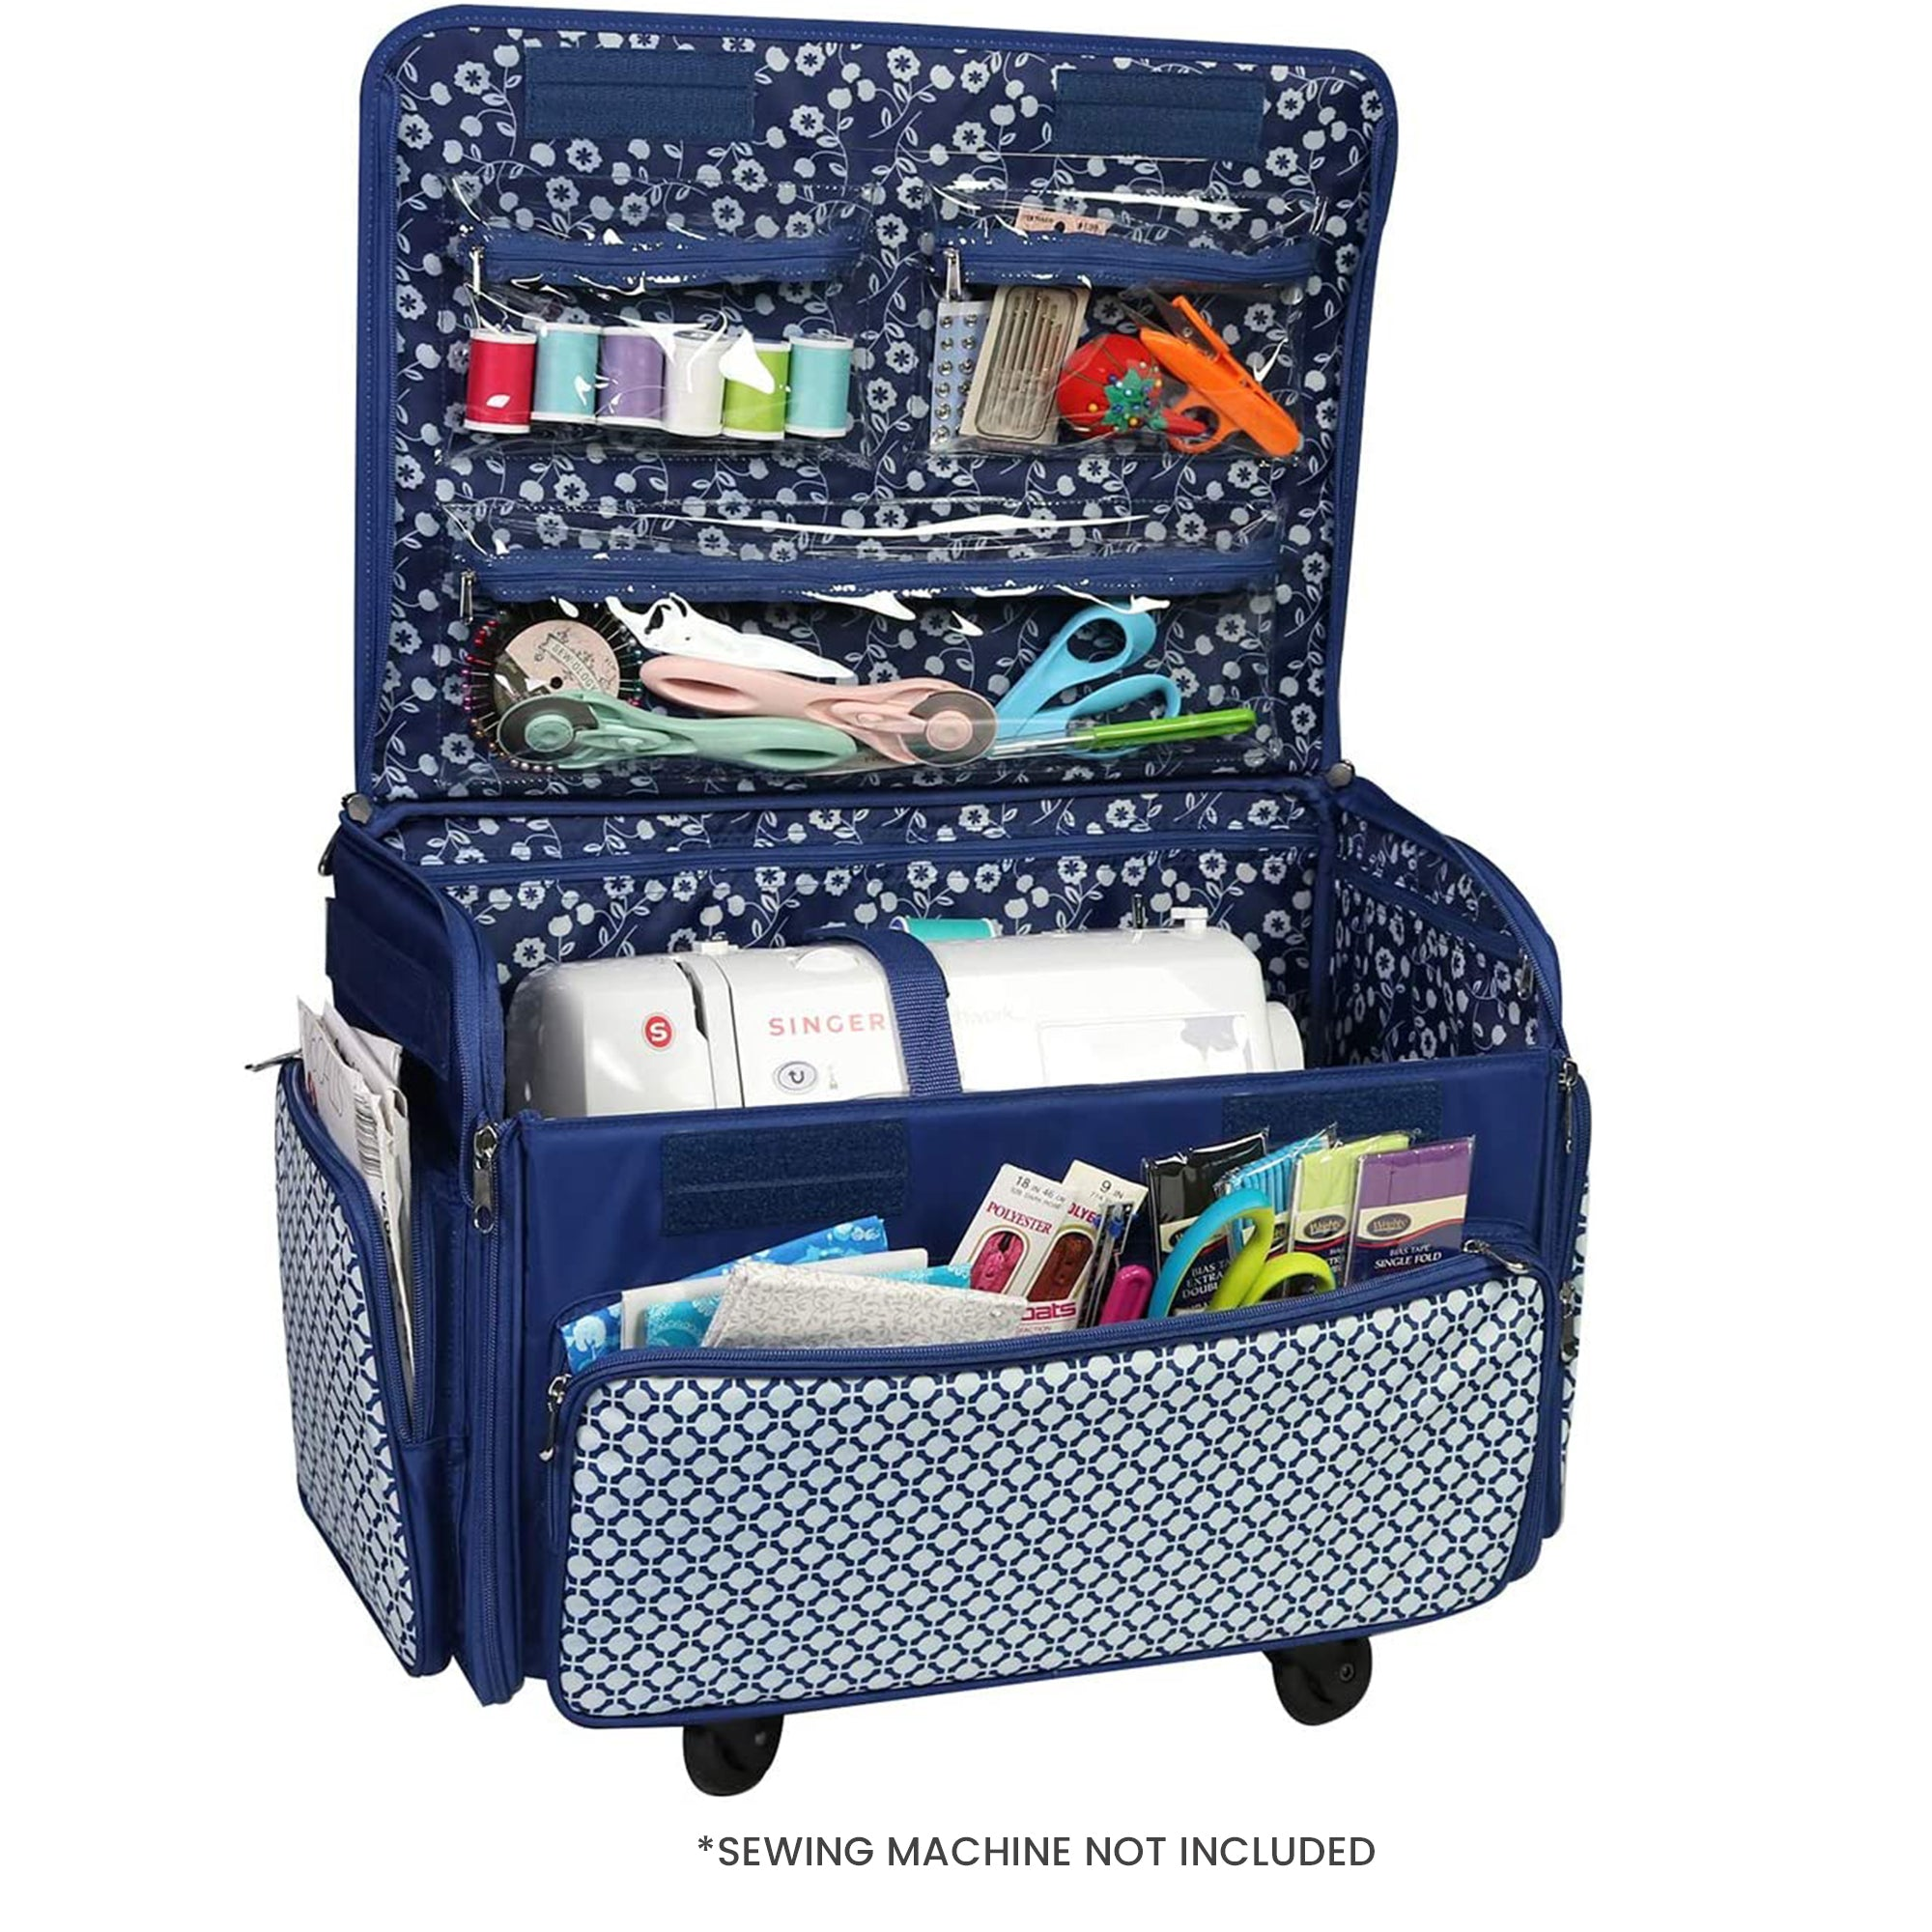 Everything Mary 4 Wheels Collapsible Deluxe Sewing Machine Storage Case Color Rolling Trolley Carrying Bag For Brother Singer Bernina Most Machines Travel Tote Organizer For Accessories